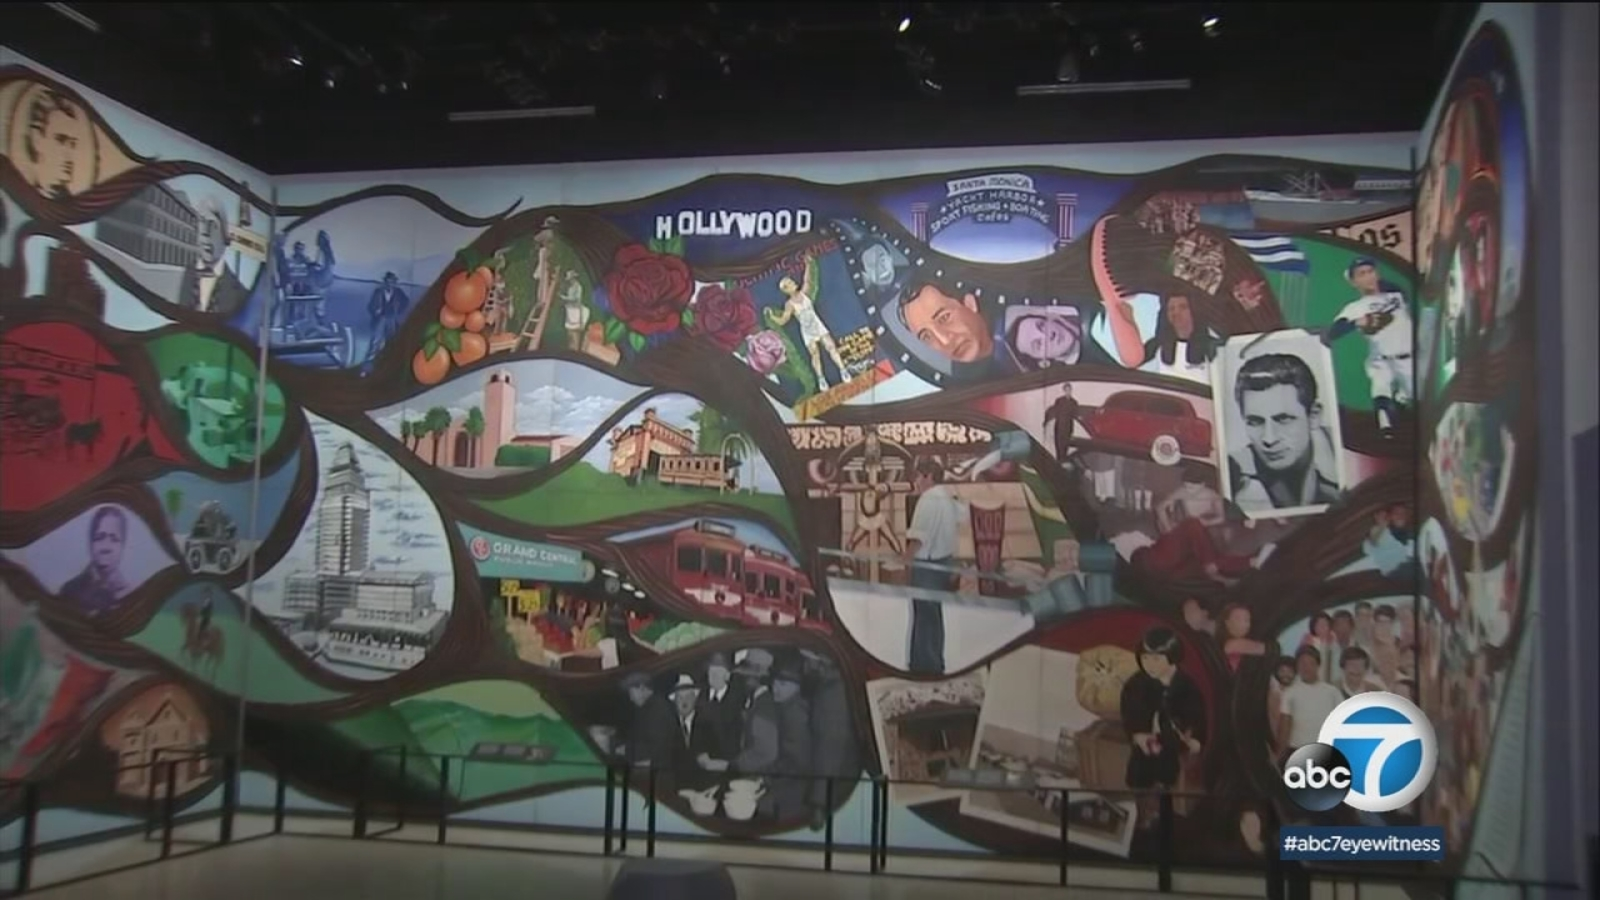 Landmark Mural Comes To Natural History Museum Of Los Angeles Abc7 Los Angeles